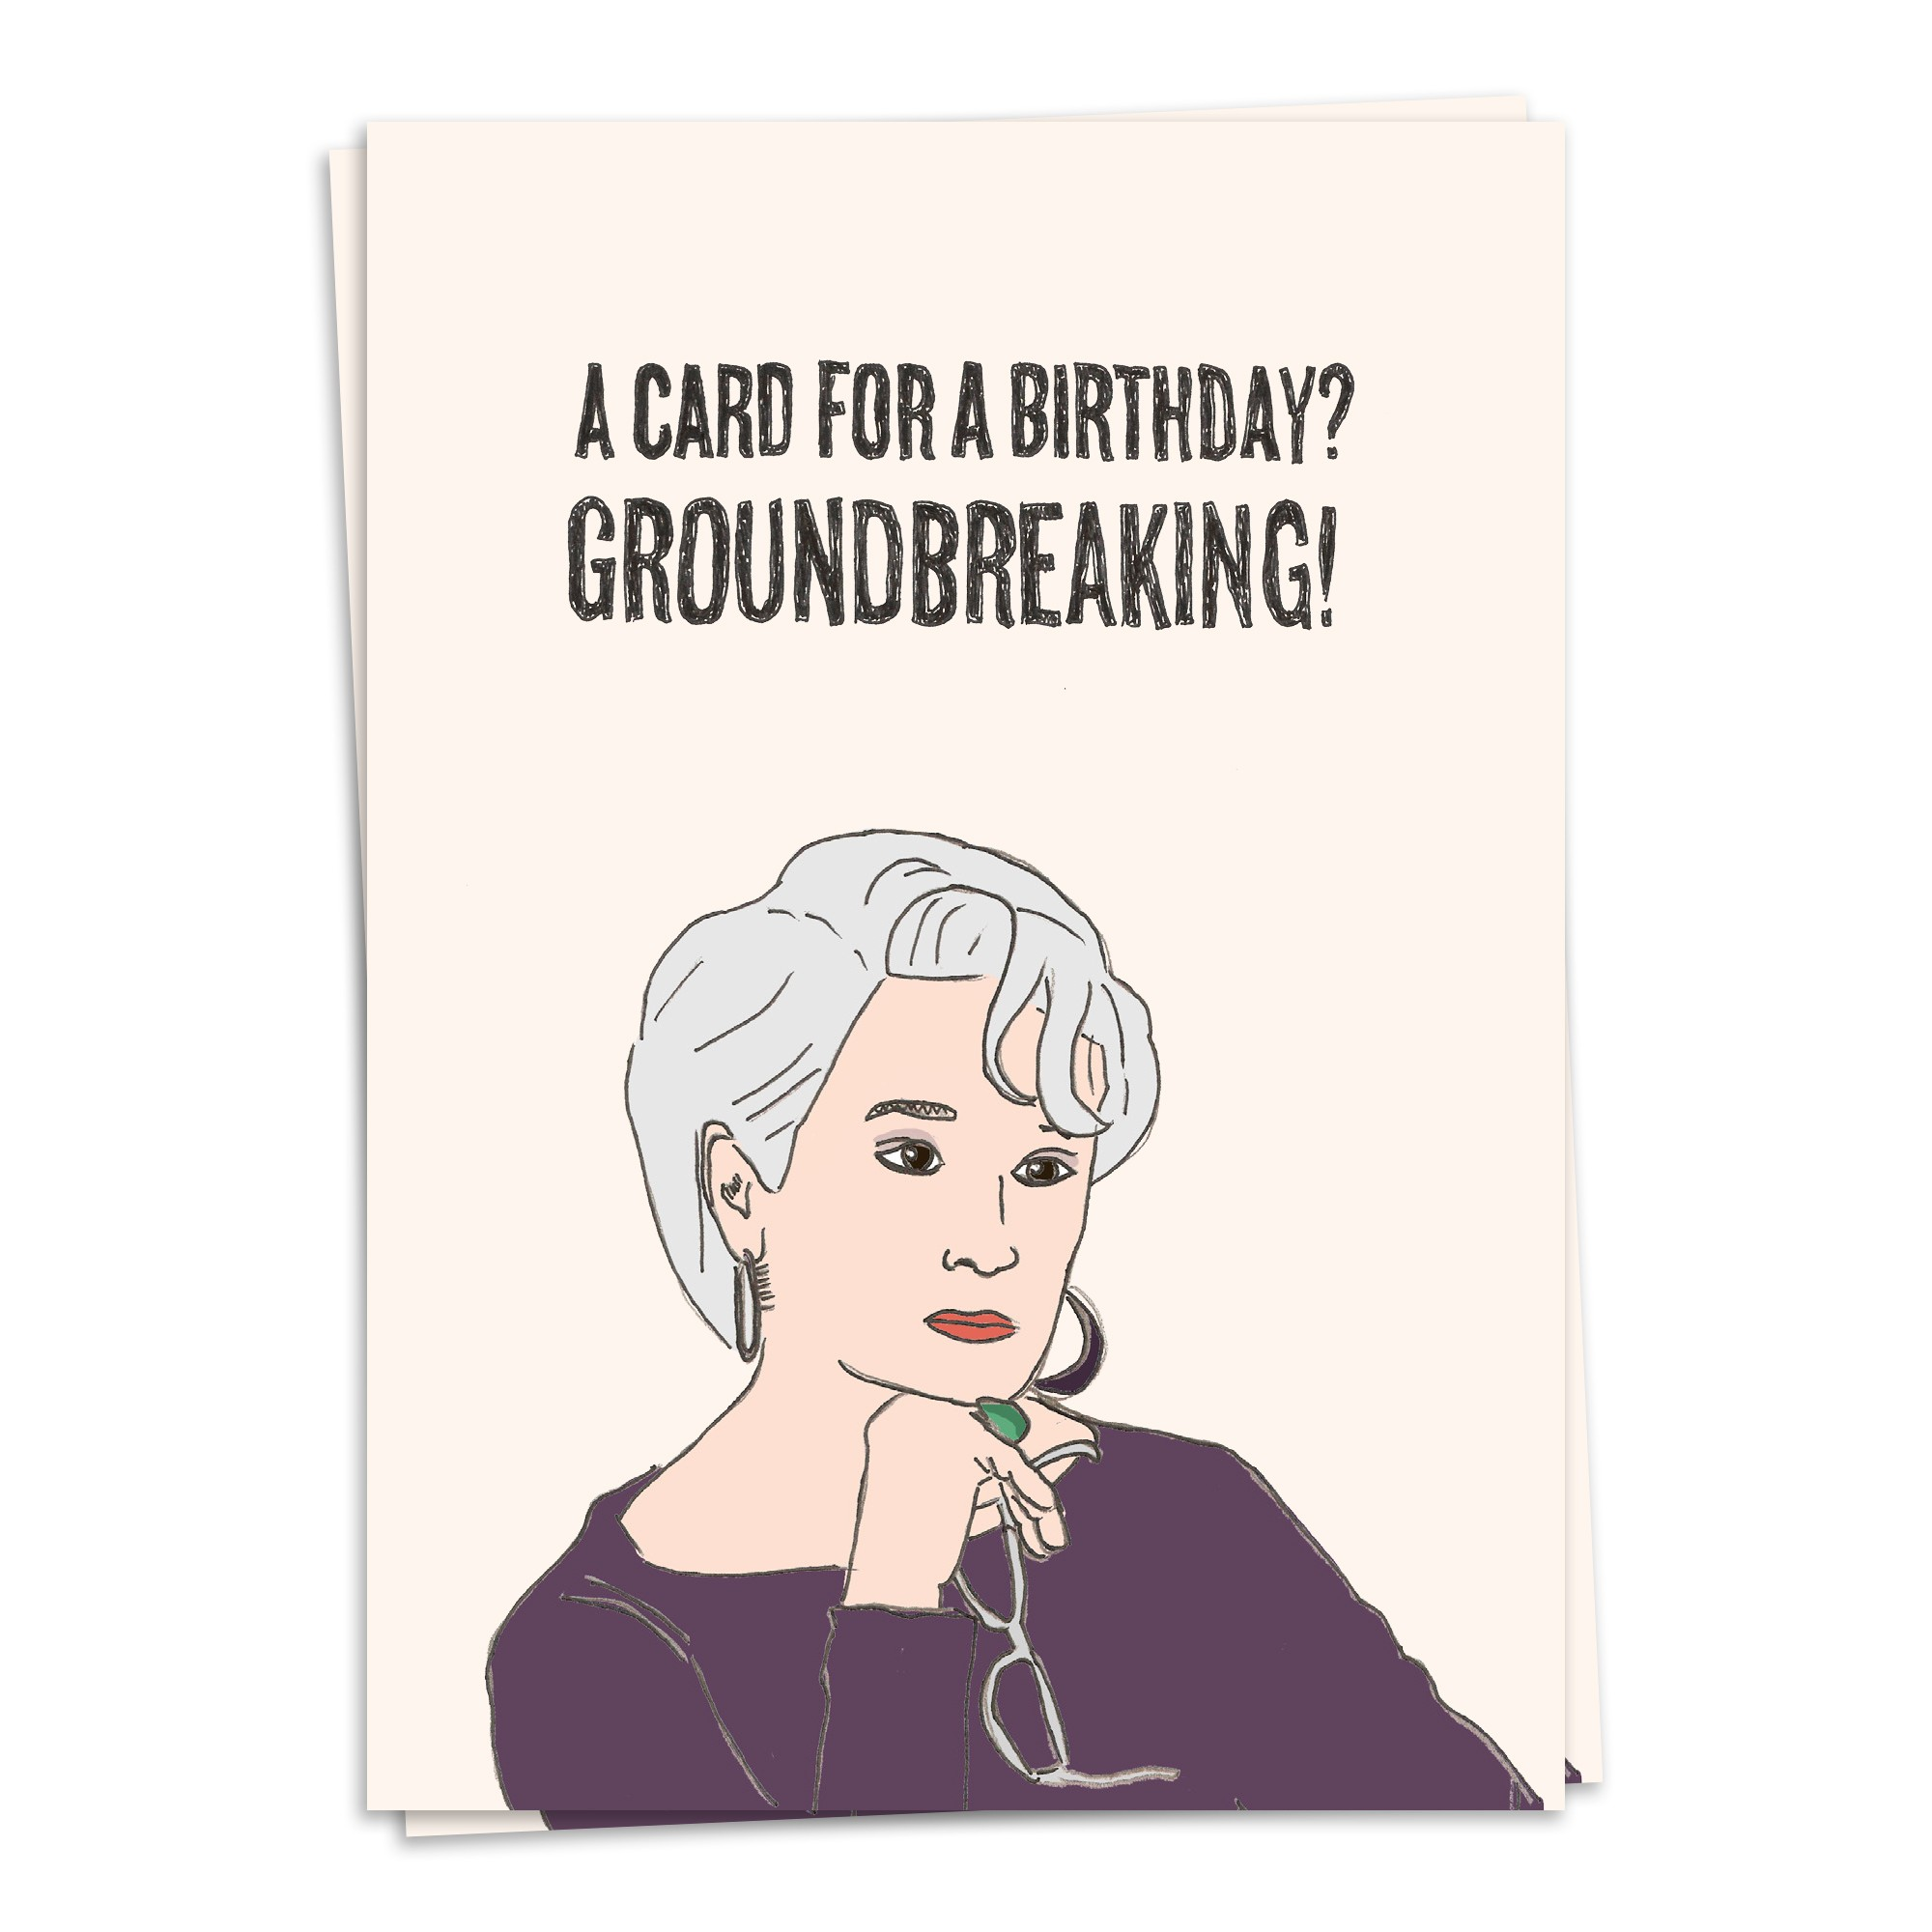 Birthday - groundbreaking